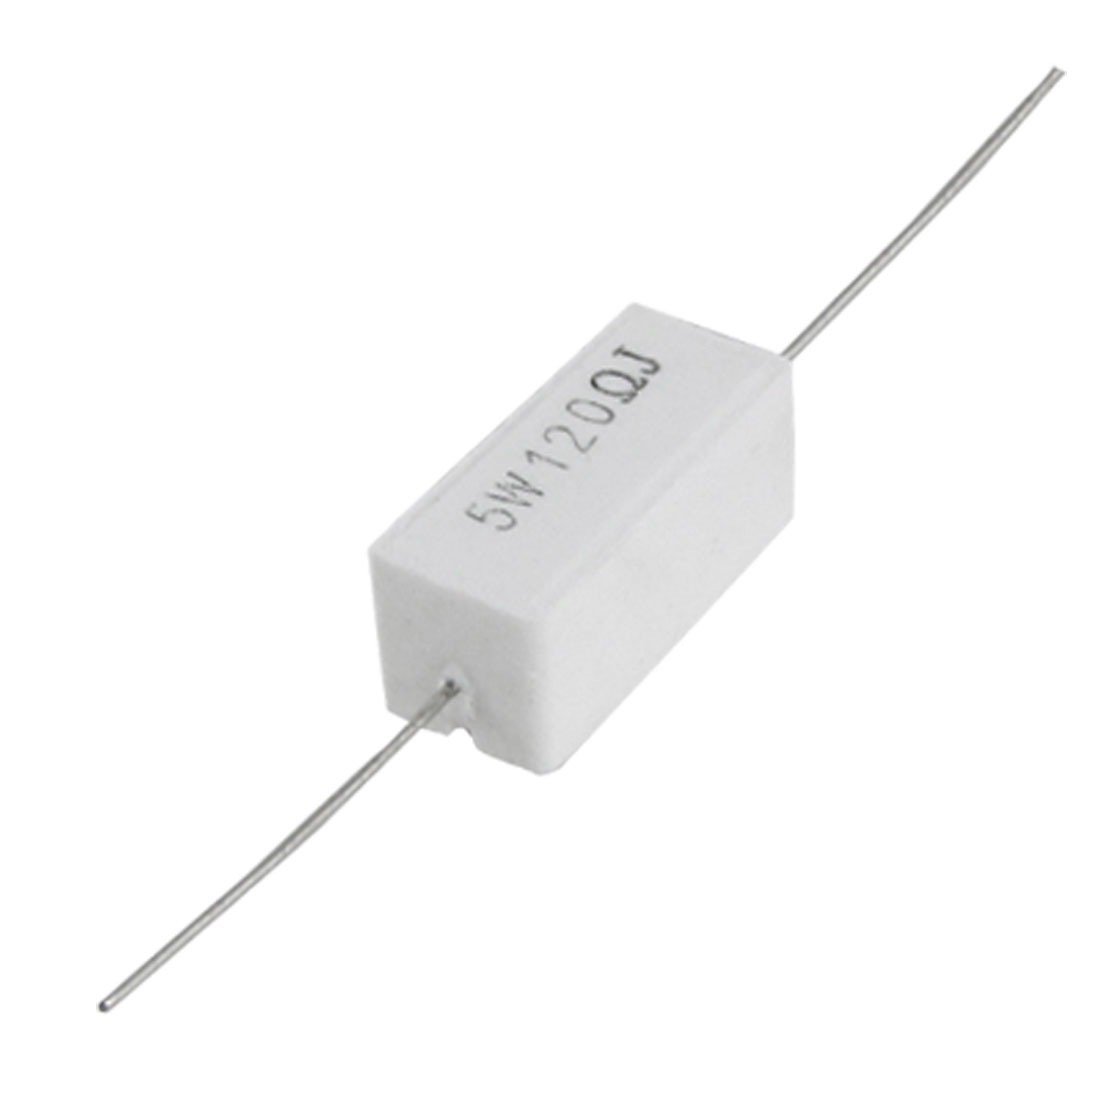 10x 5W 120 Ohm 5% Axial Ceramic Cement Power Resistors